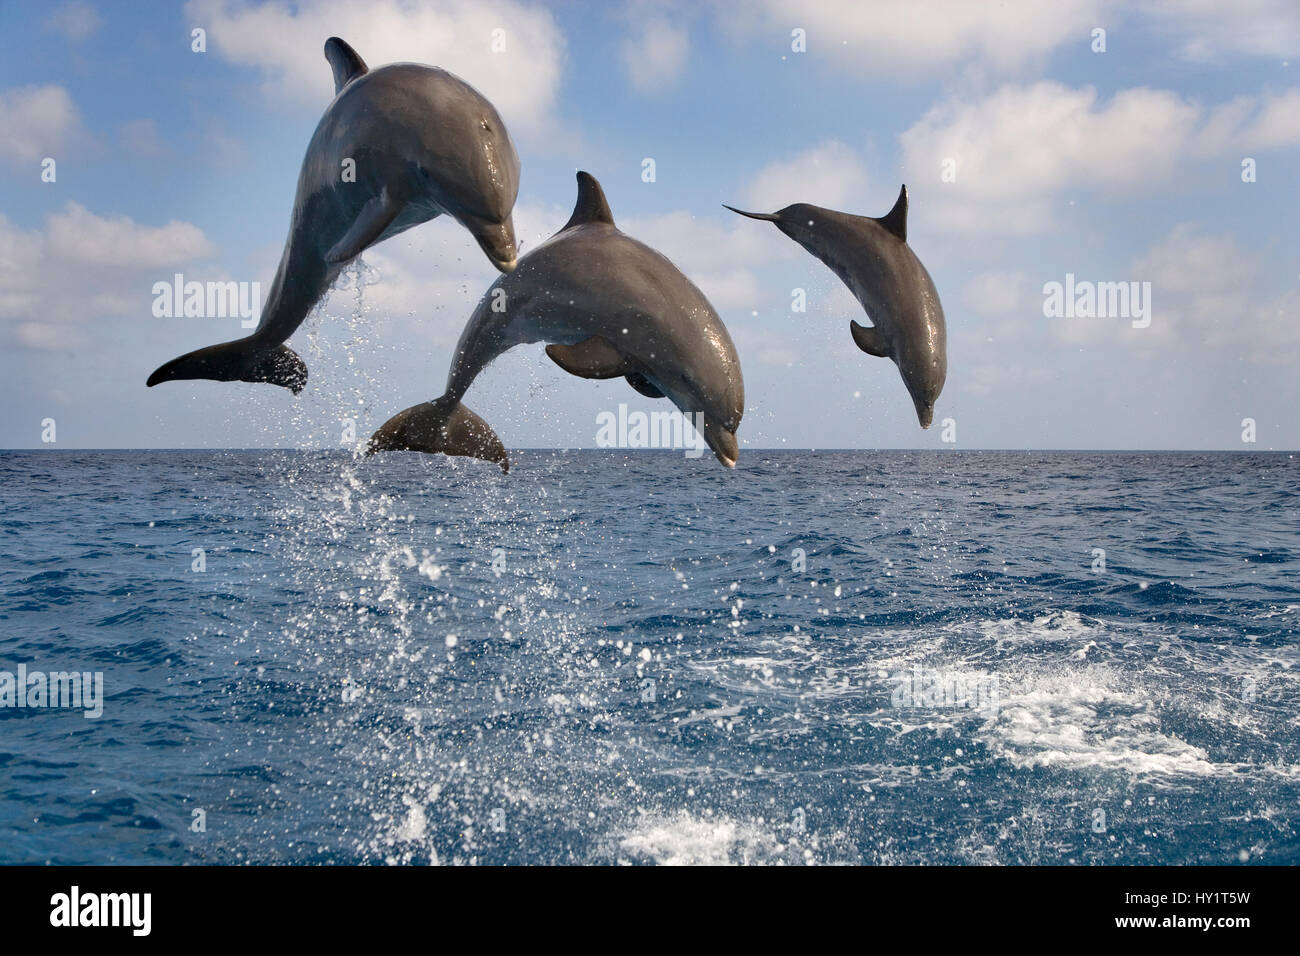 Three Bottle-nosed dolphins (Tursiops truncatus) breaching, Bay Islands, Honduras, Caribbean. Controlled conditions. - Stock Image